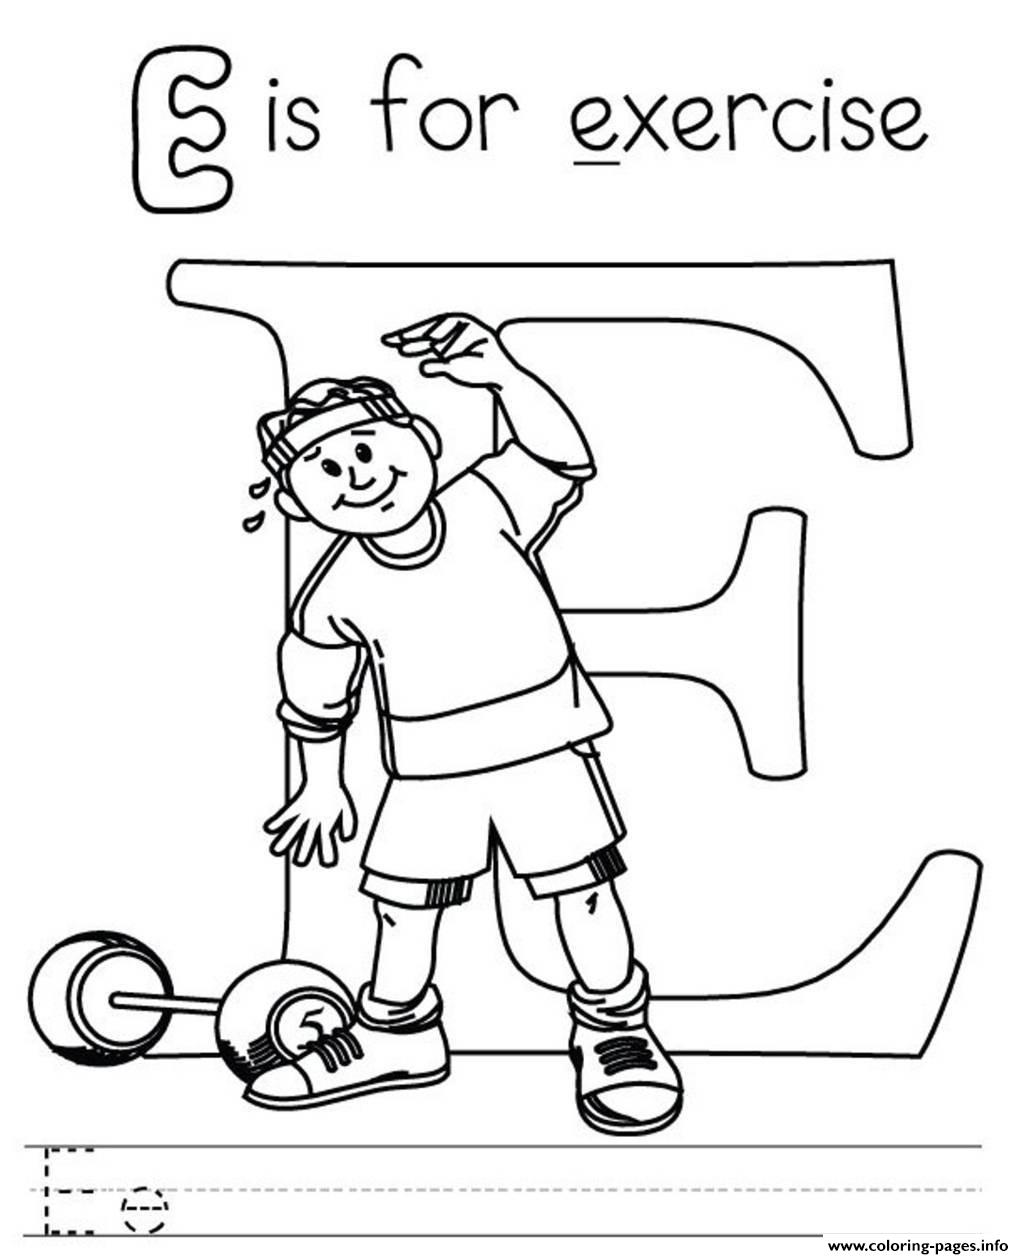 Nutrition Coloring Pages Collection Healthy Coloring Pages Free ... | 1259x1024